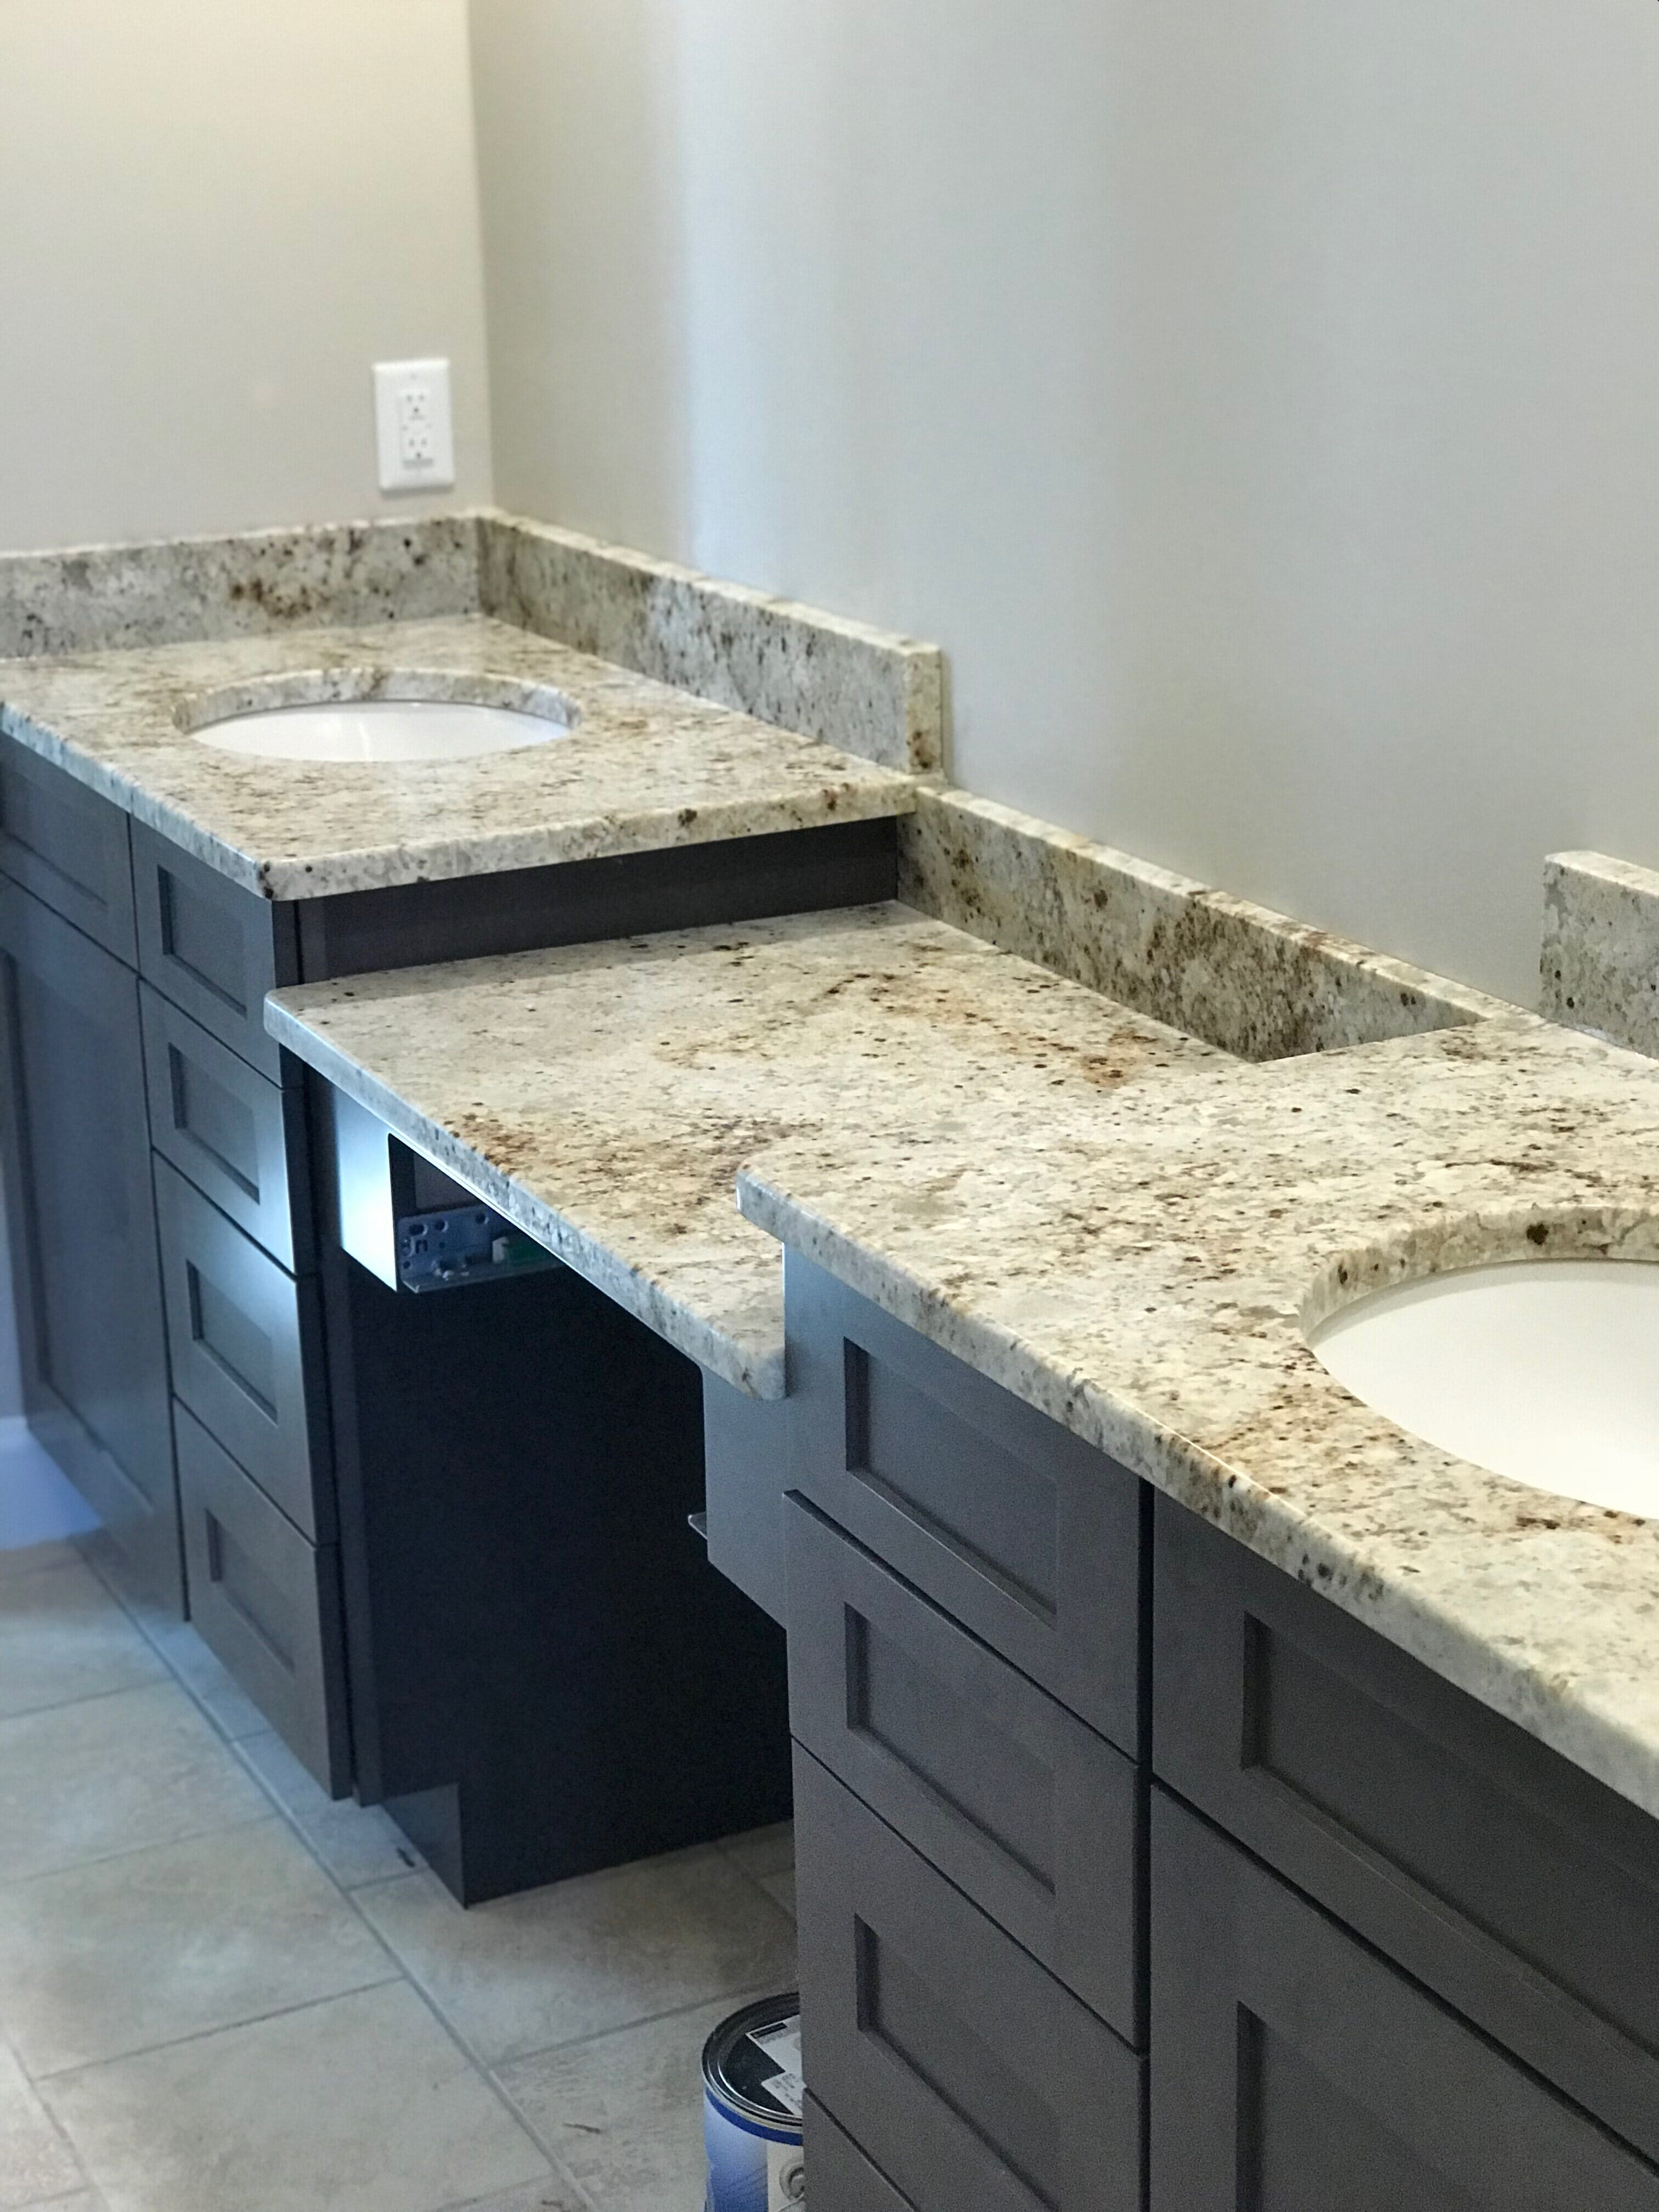 non maple bksc reversible rock countertops kitchensource thick table john jb edge oil top grain hard grade commercial boos d o bakers tops counter com finish